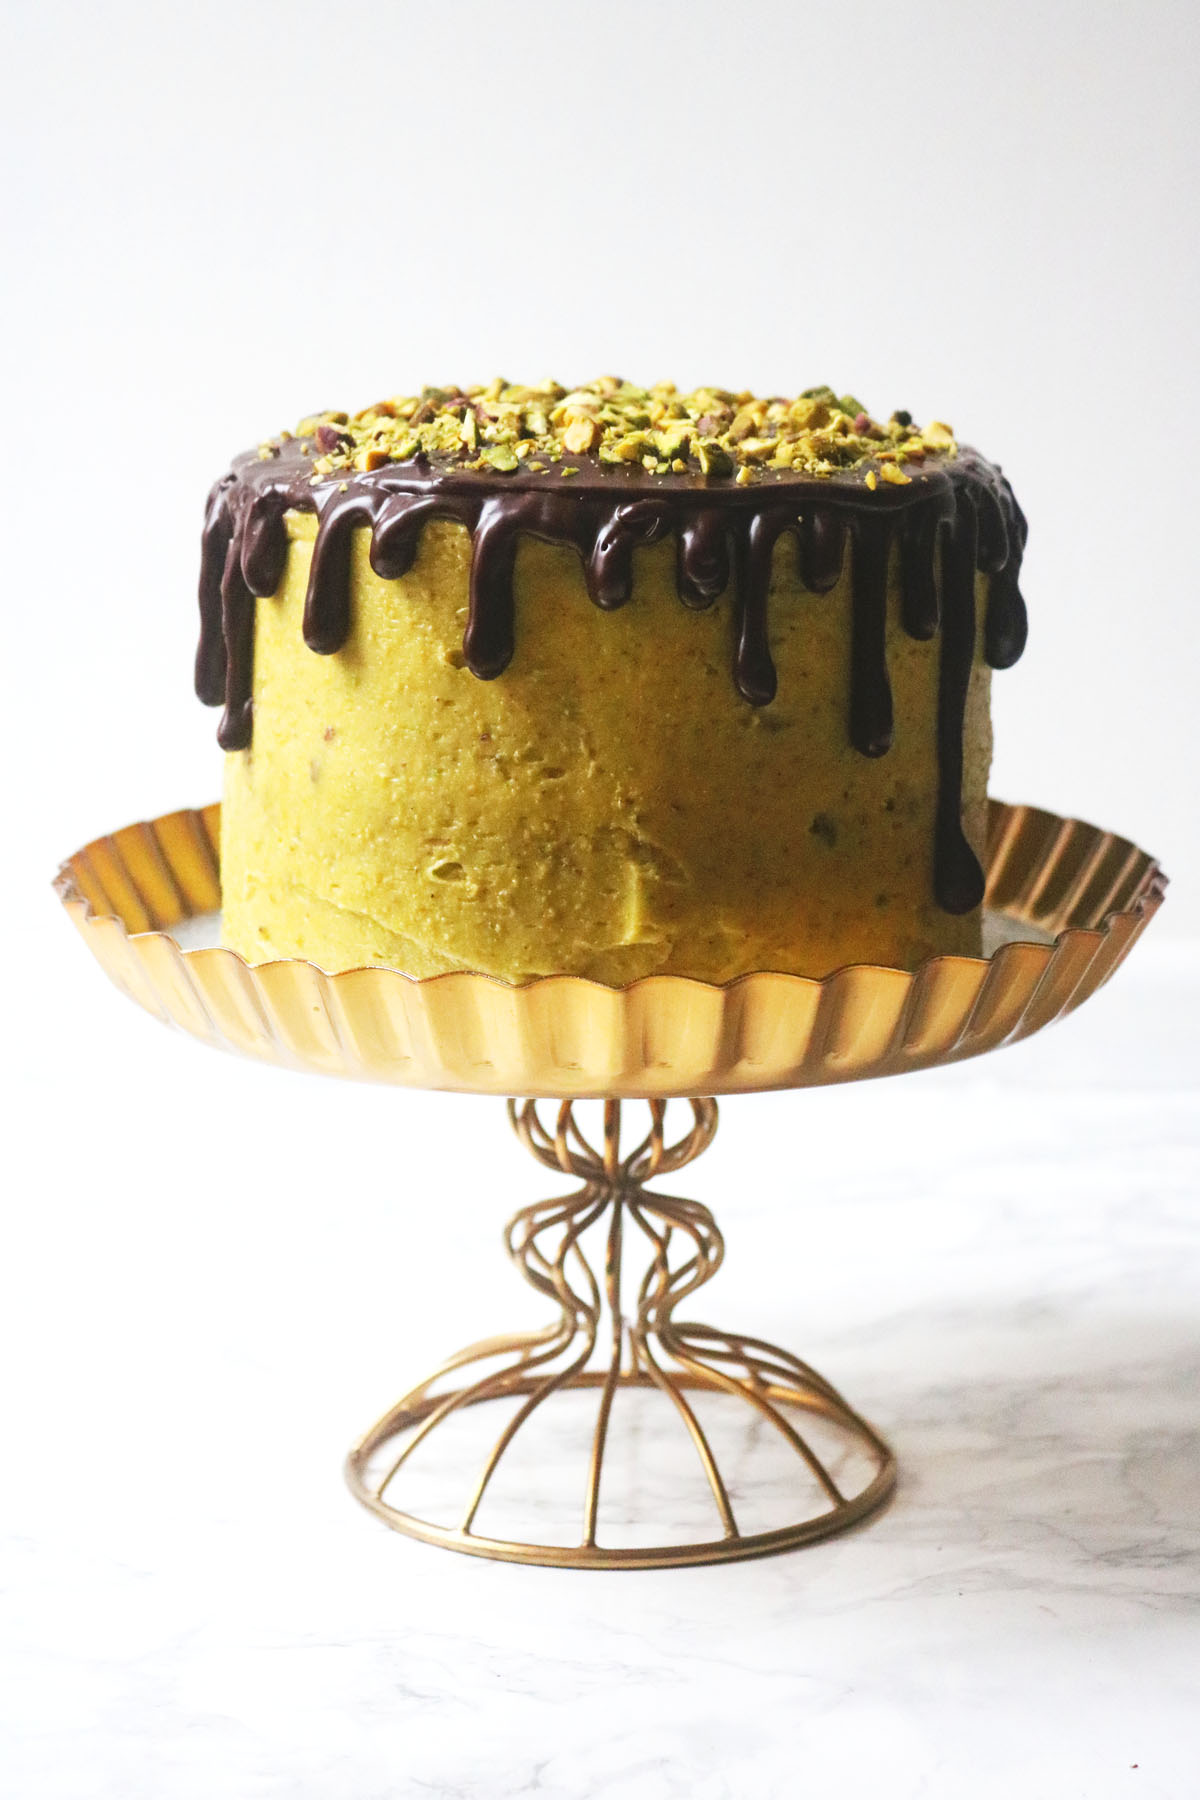 Chocolate and Pistachio Cake on a gold cake stand